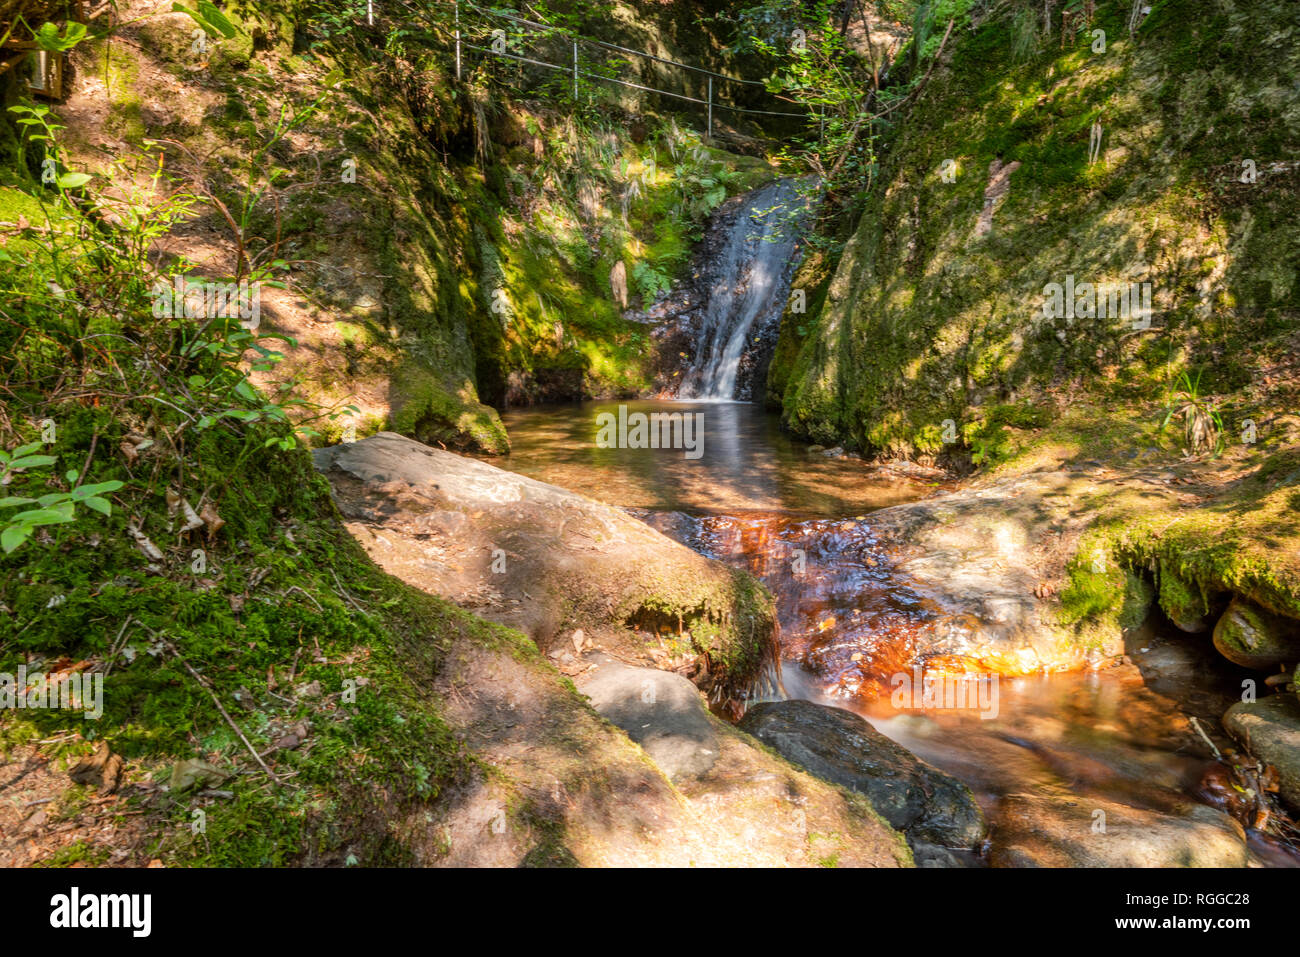 section of the Edelfrauengrab waterfalls, Northern Black Forest, Germany, town Ottenhöfen, also ascent in the valley Gottschlägtal to Karlsruher Grat - Stock Image